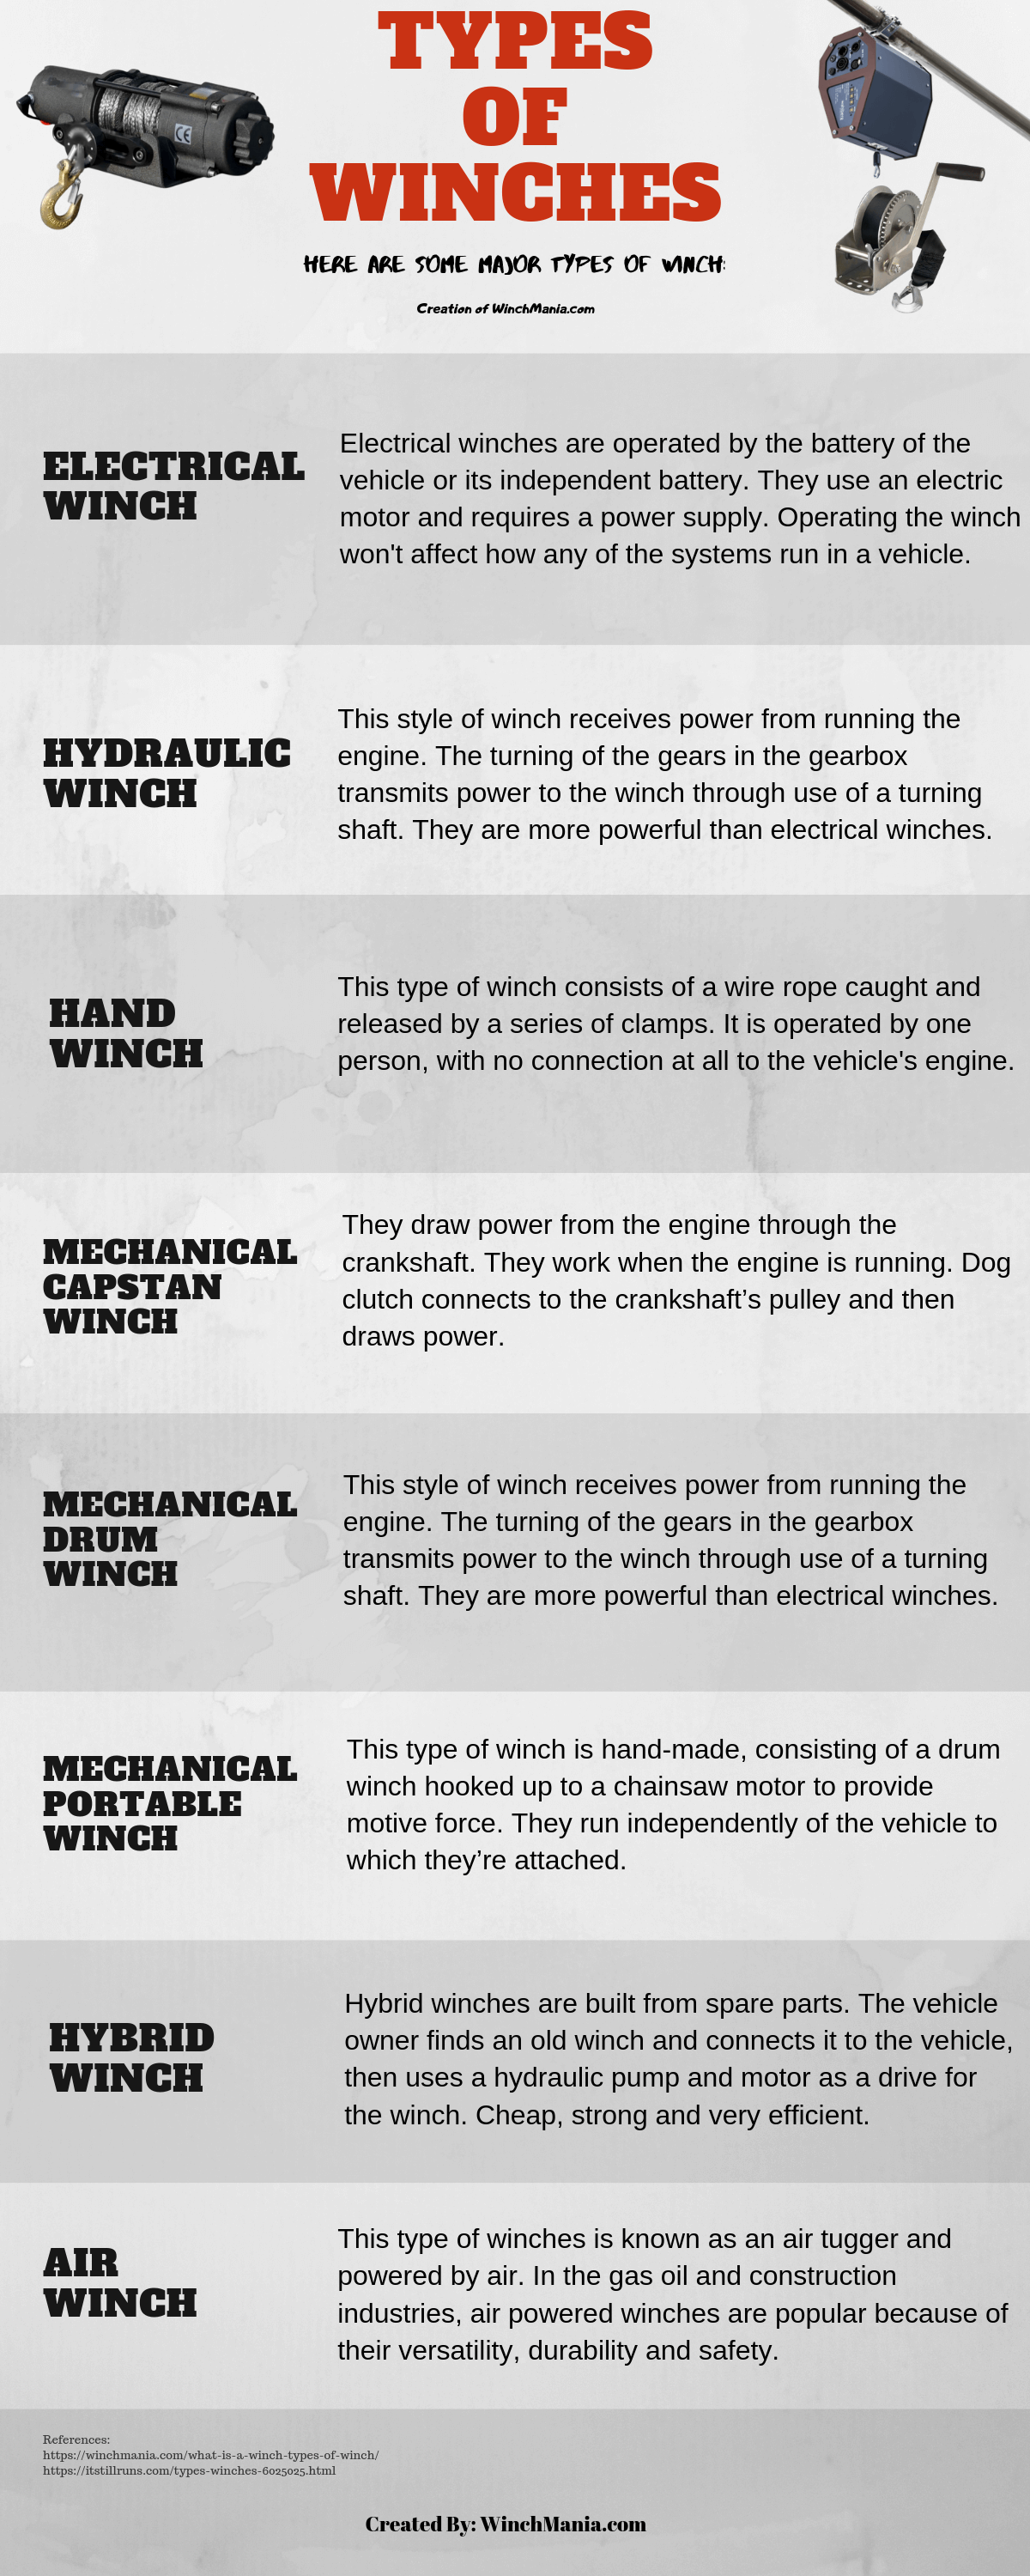 Types of winches infographic